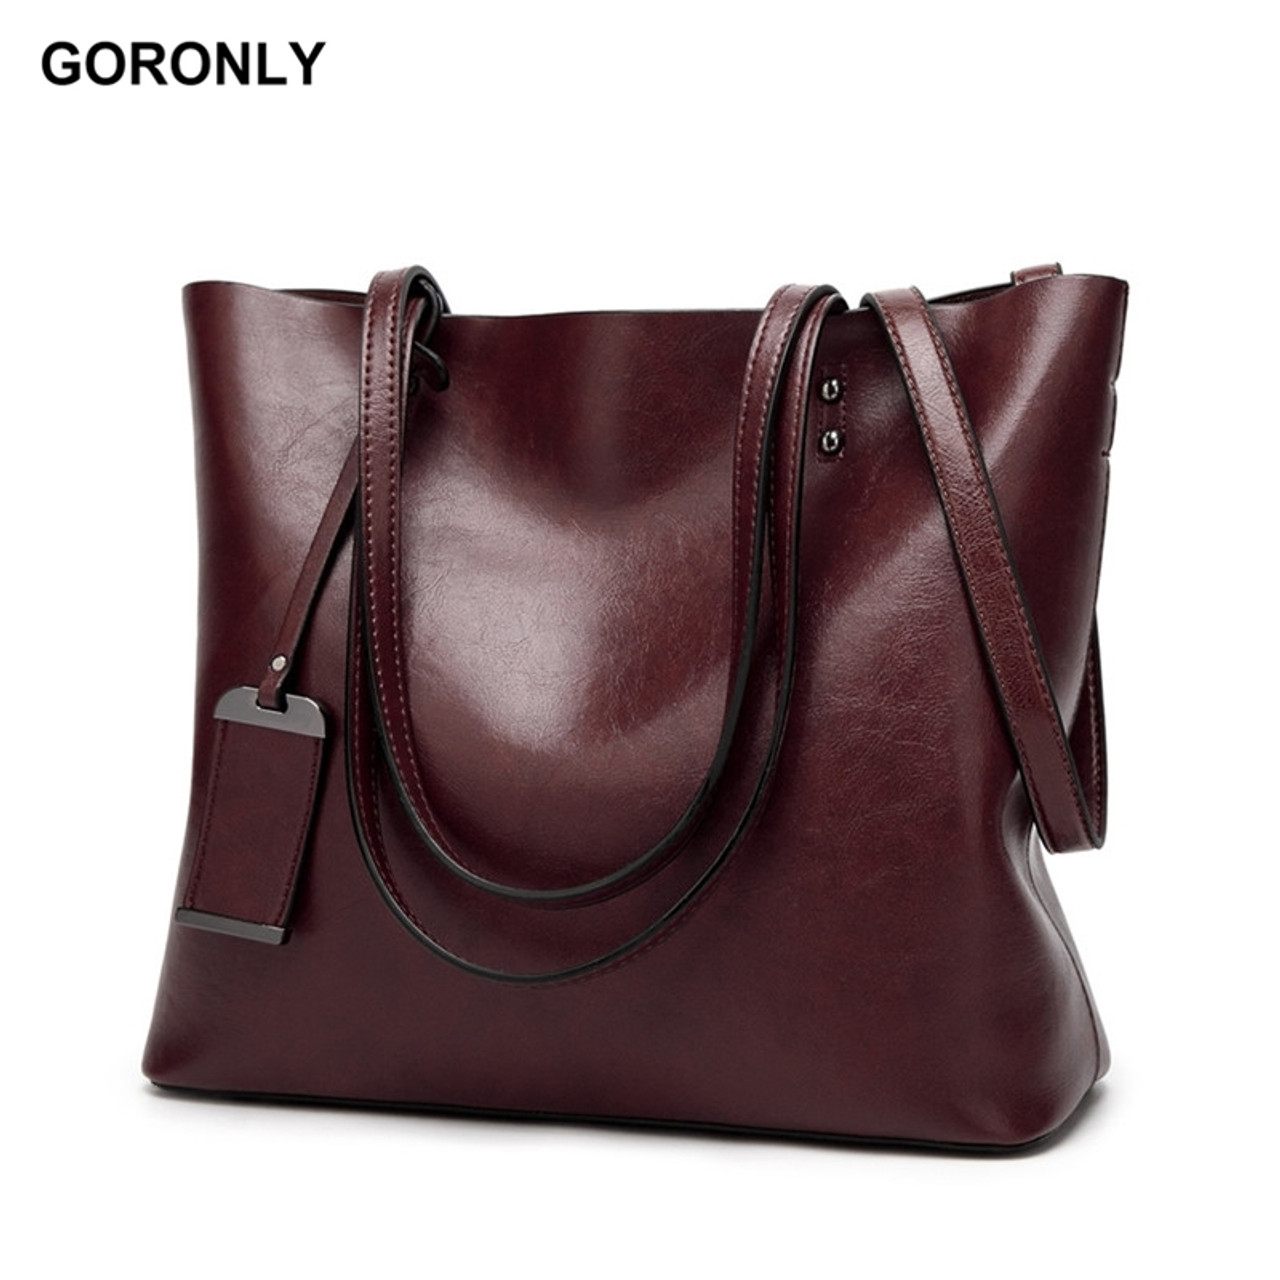 d046c8c40e98 GORONLY Brand New Leather Tote Bag Women Handbags Designer Large Capacity  Shoulder Bags Fashion Lady Purses ...